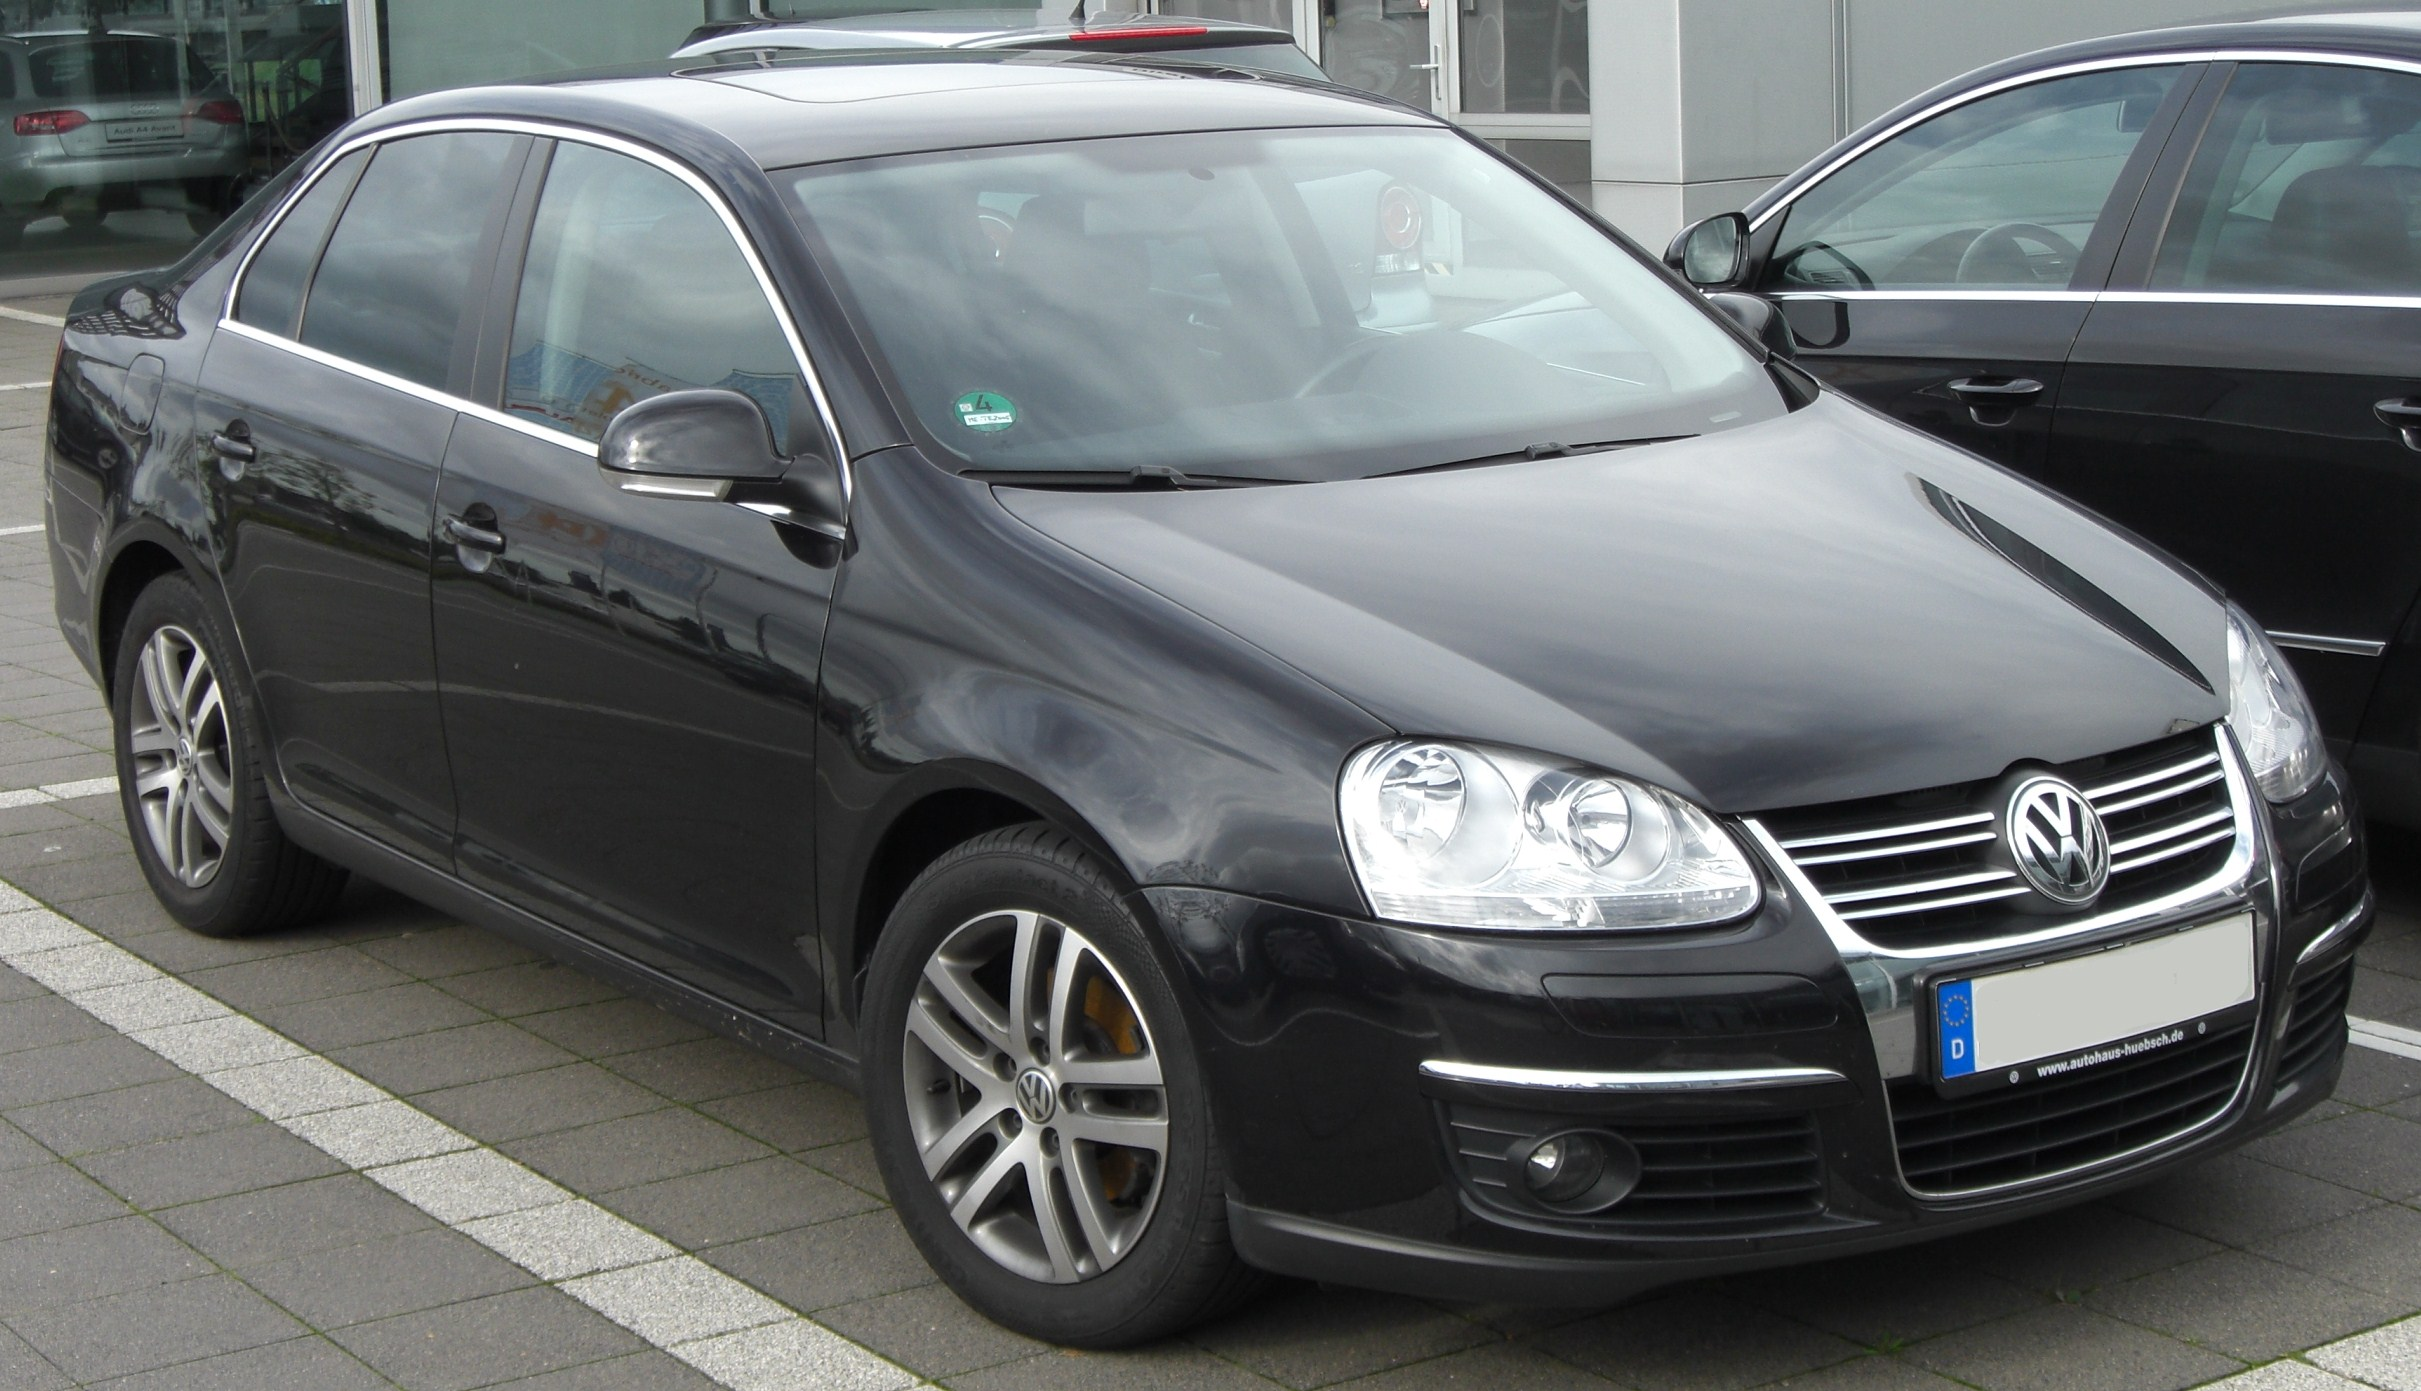 File:VW Jetta front.JPG - Wikimedia Commons